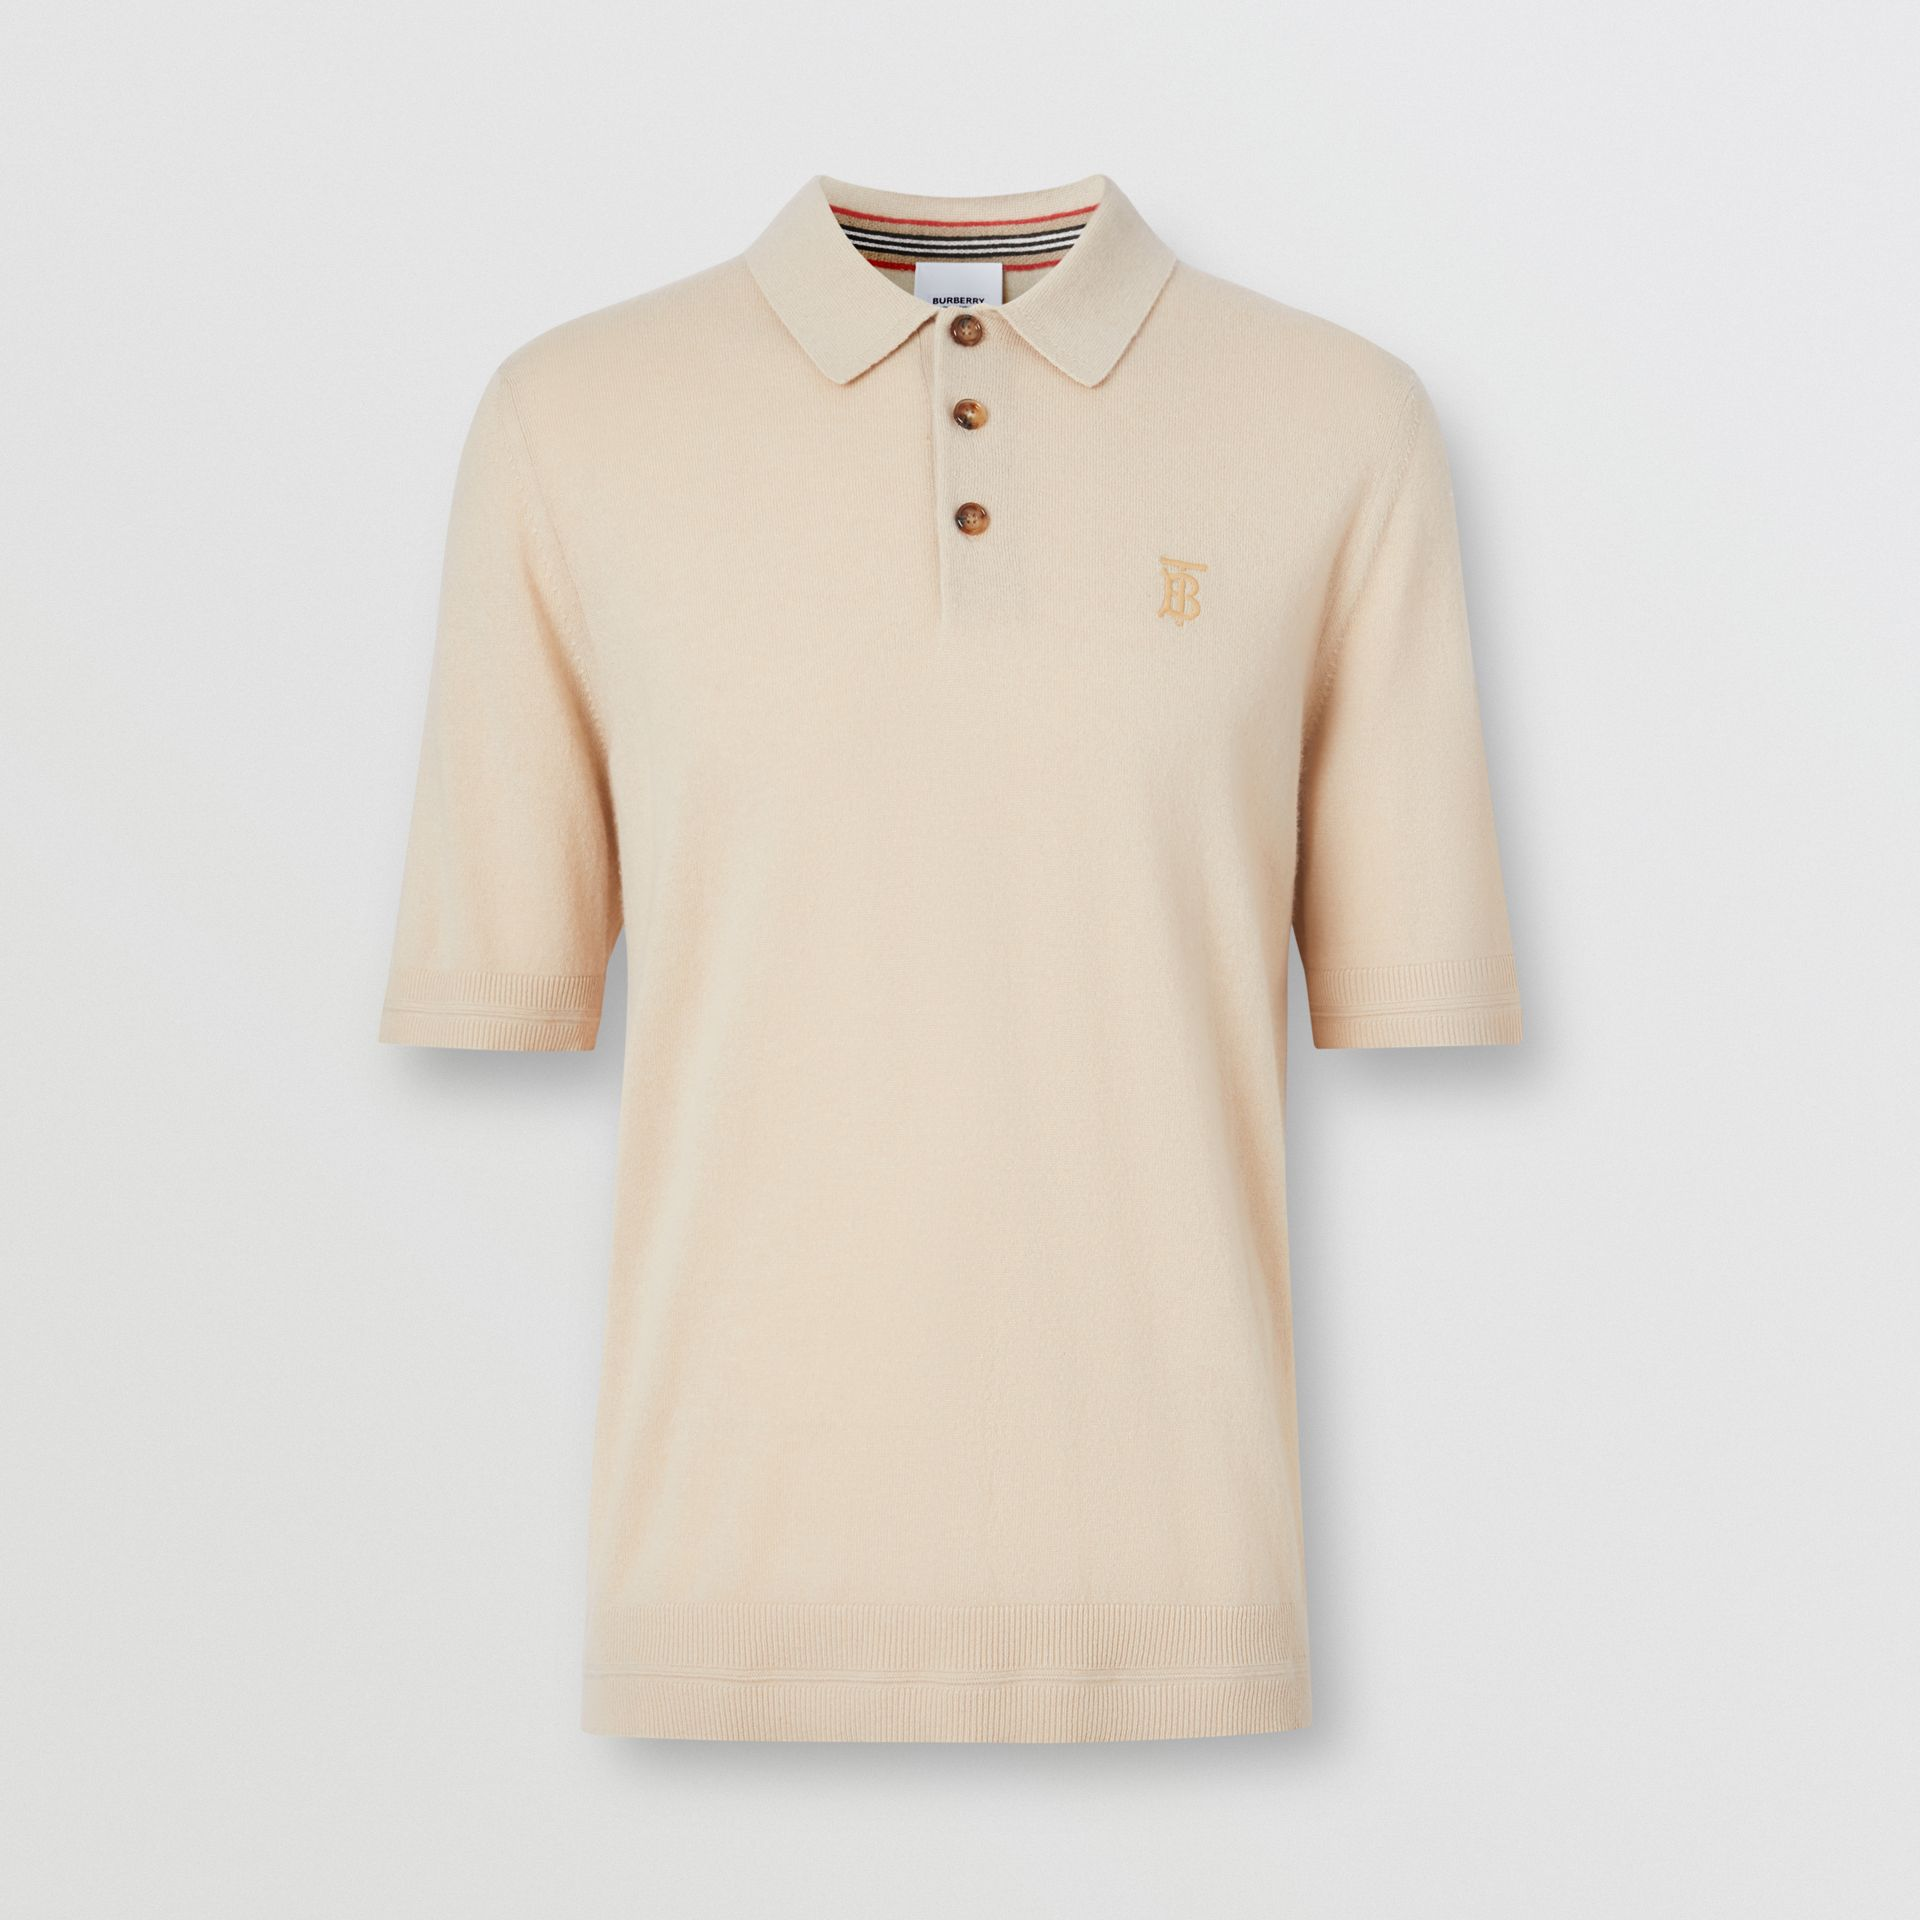 Monogram Motif Cashmere Polo Shirt in Soft Fawn - Men | Burberry United Kingdom - gallery image 3